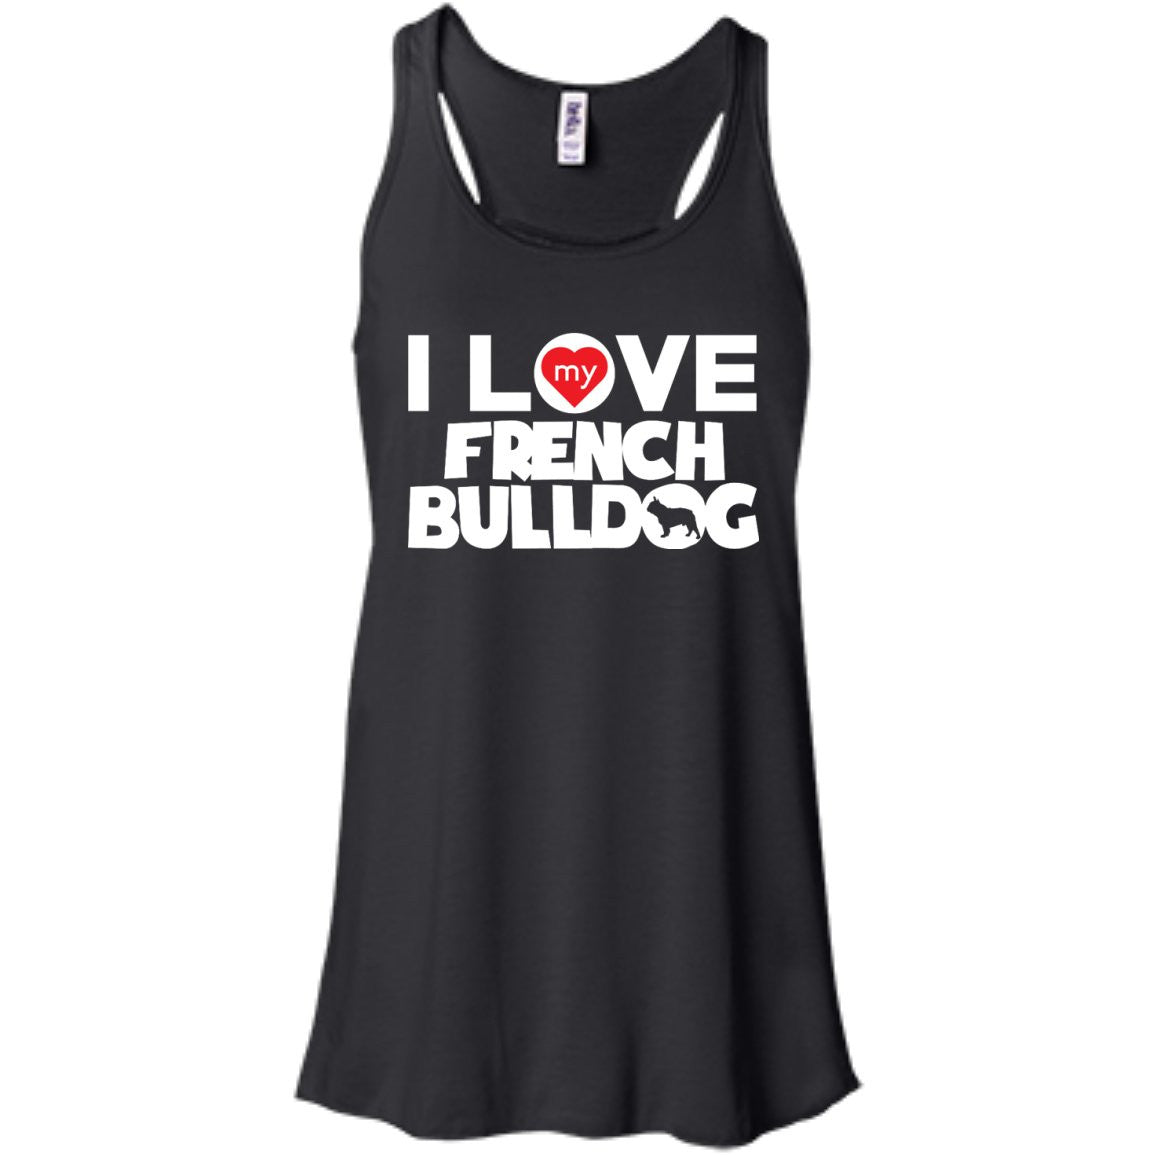 I Love My French Bulldog - Bella+Canvas Flowy Racerback Tank